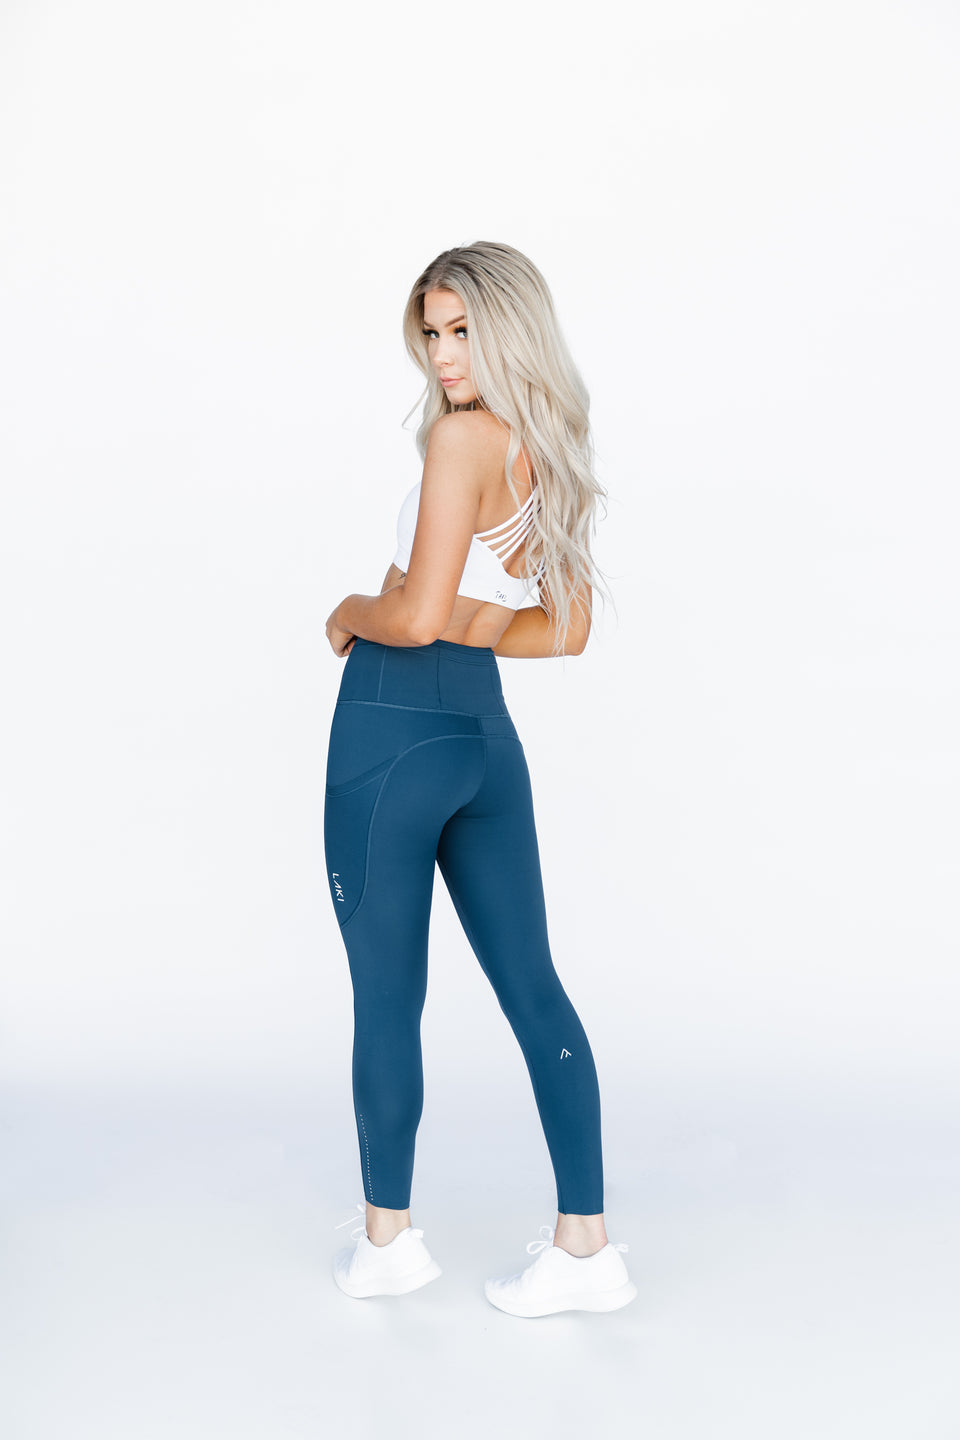 OLD ARK ii LEGGING - SKY